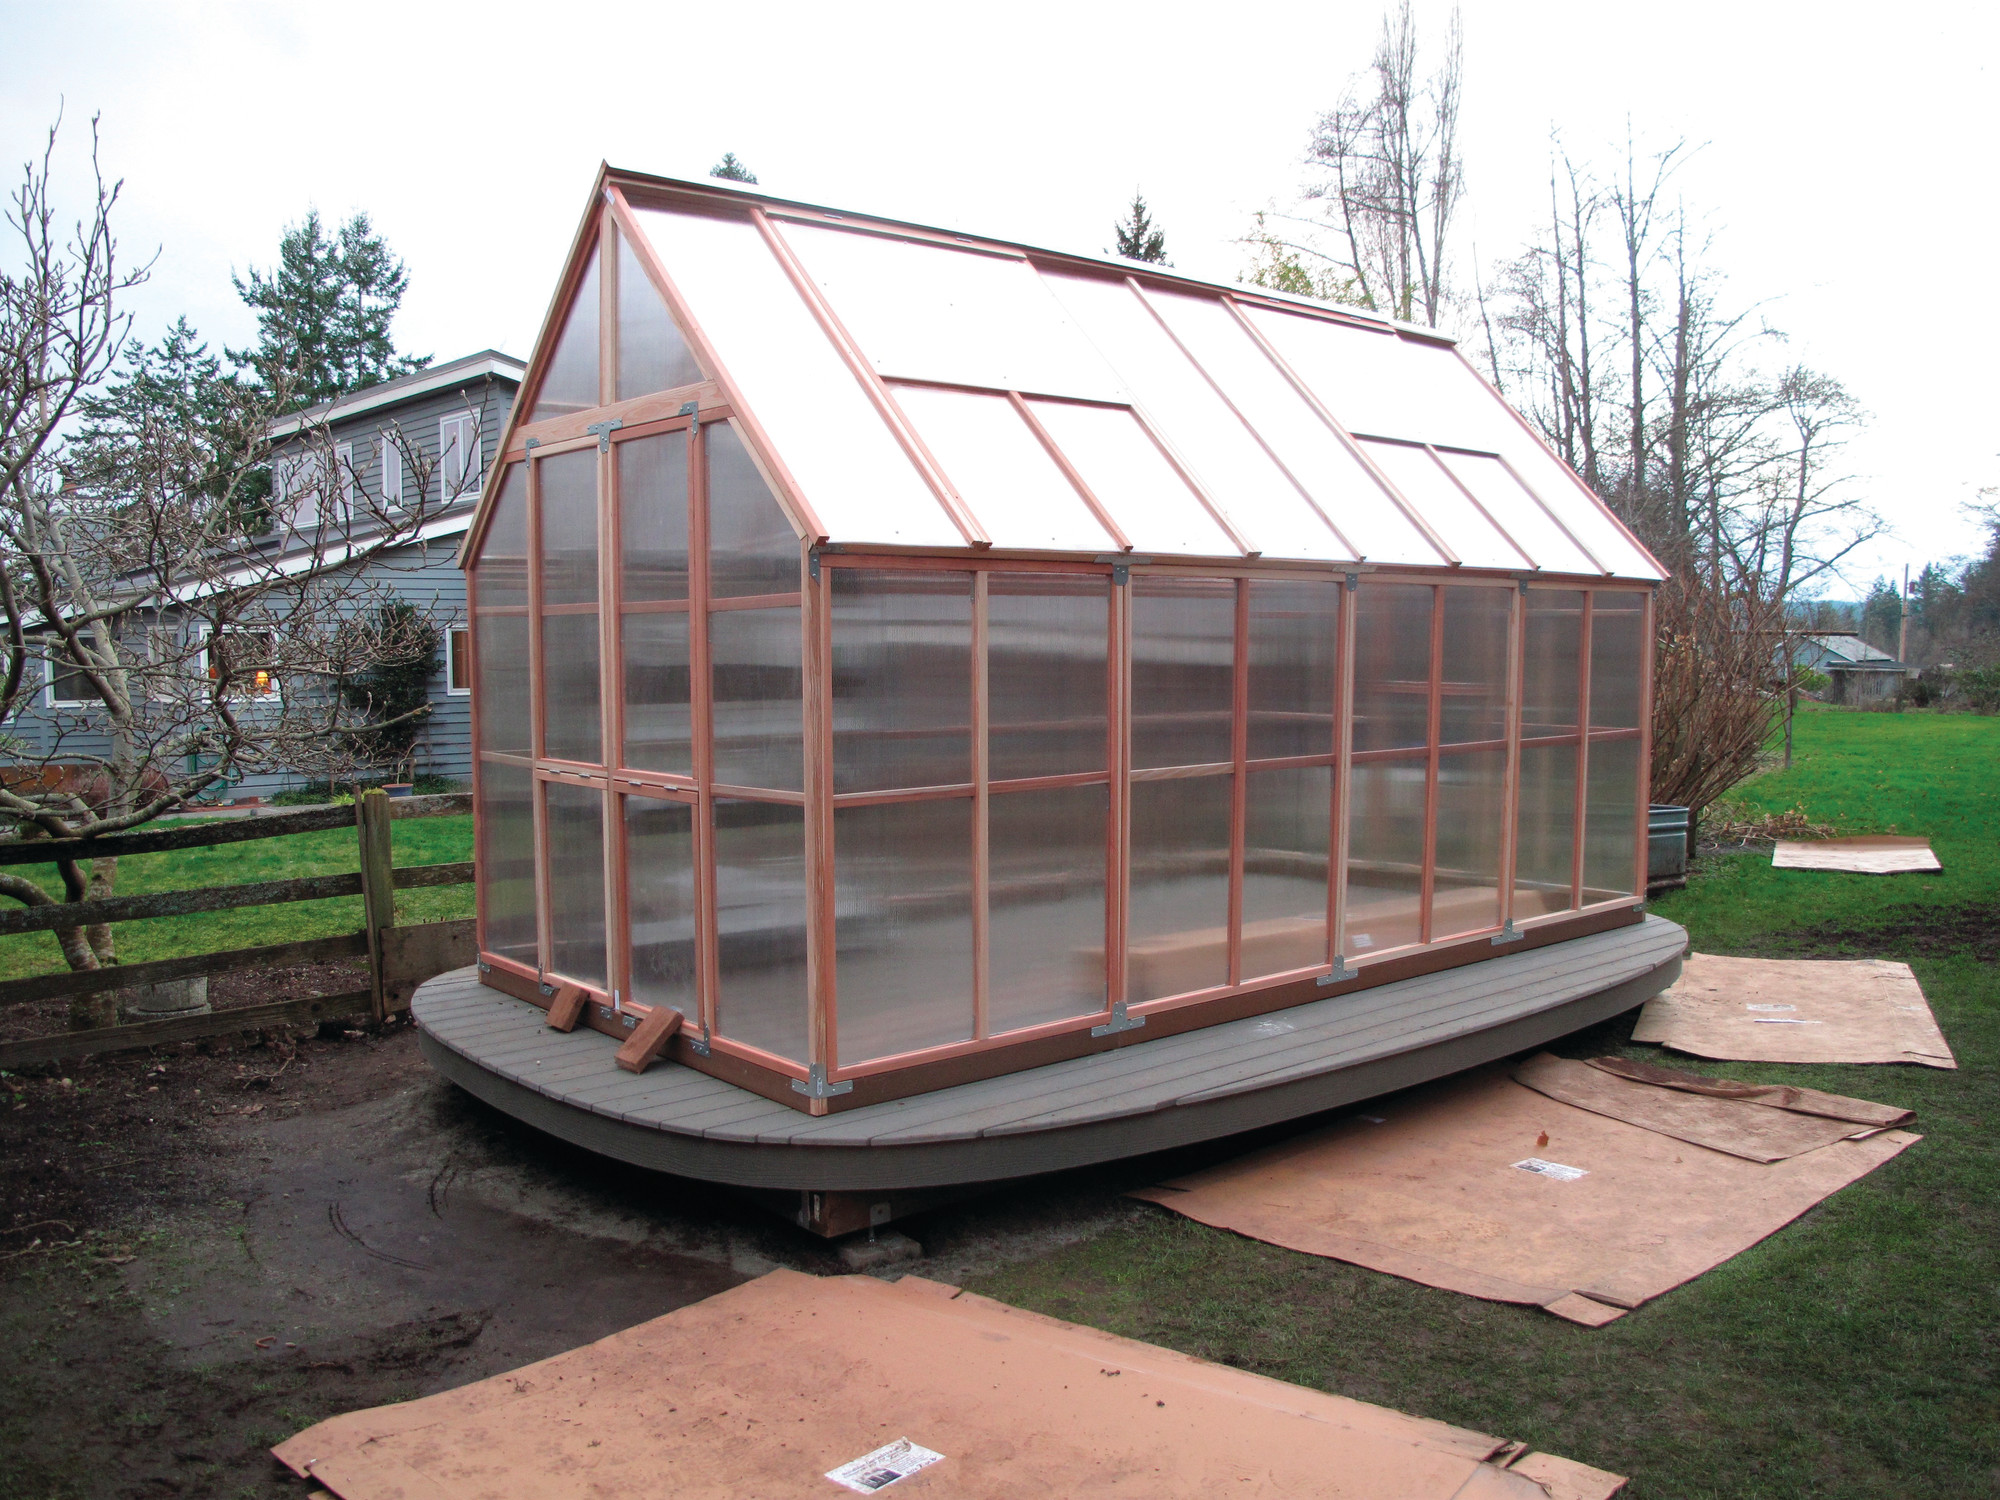 A hobby greenhouse is seen in February in Langley, Washington, built in a sunny location capable of capturing an immense amount of summertime heat. It was later equipped with a timed irrigation system that automatically turns on early in the morning to water a wide assortment of potted plants. Smart devices are being introduced to make gardening less demanding and more efficient.